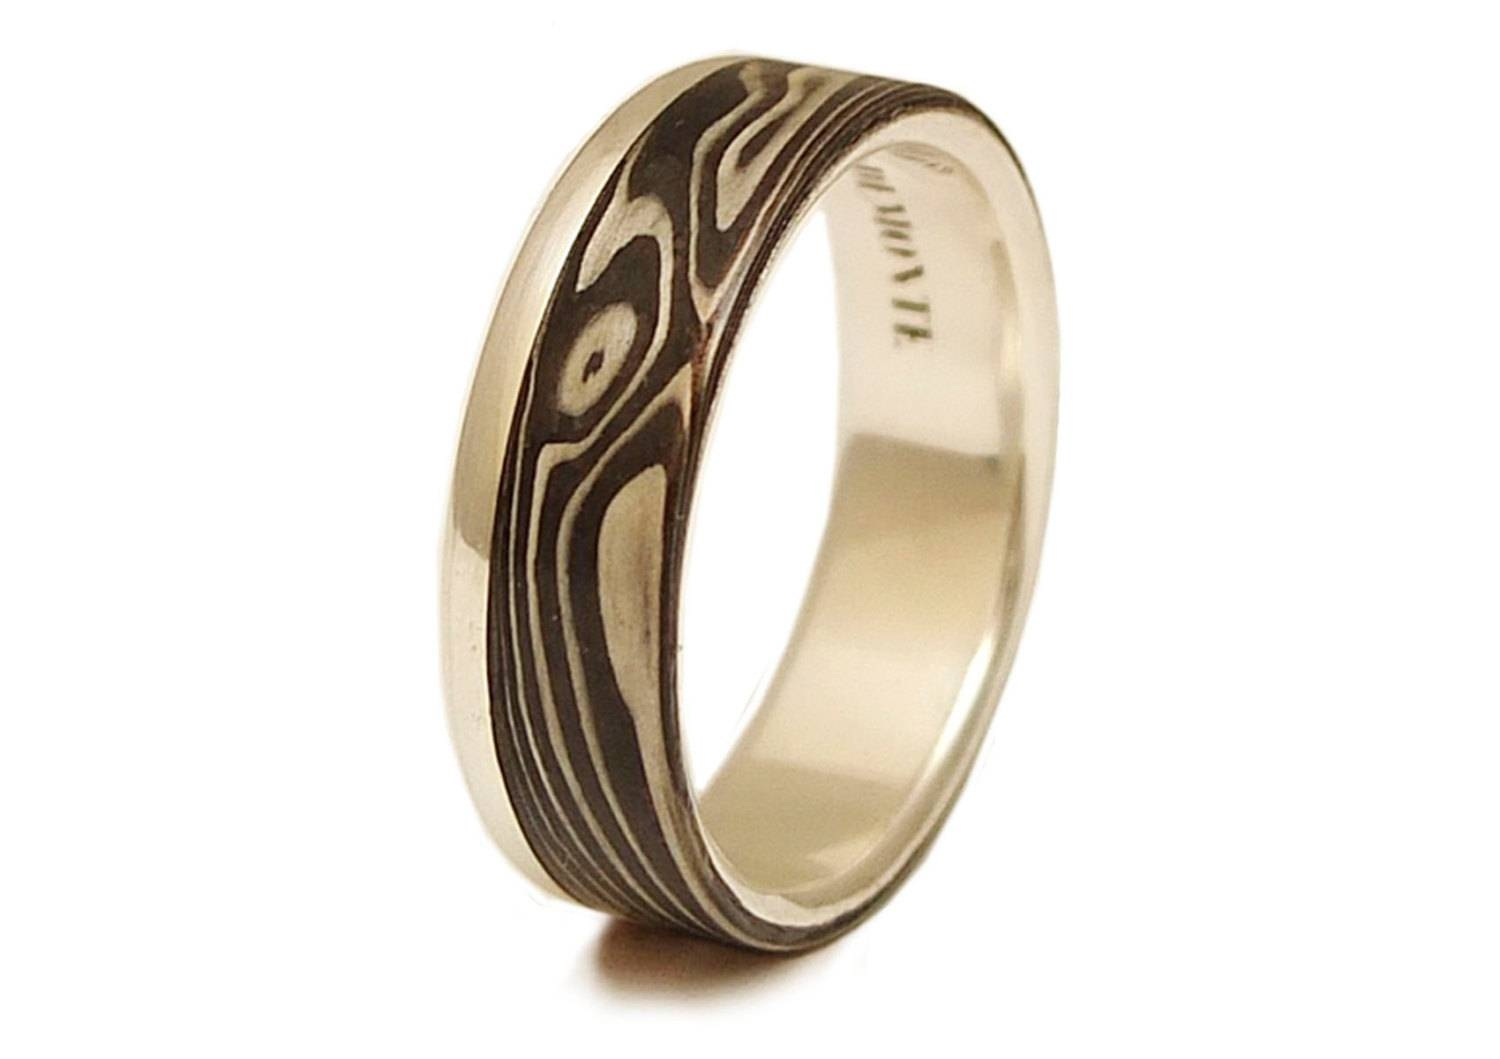 Mokume Gane Ring Shakudo Shibuichi Kuro Shibuichi Regarding Mokume Gane Wedding Bands (View 8 of 15)